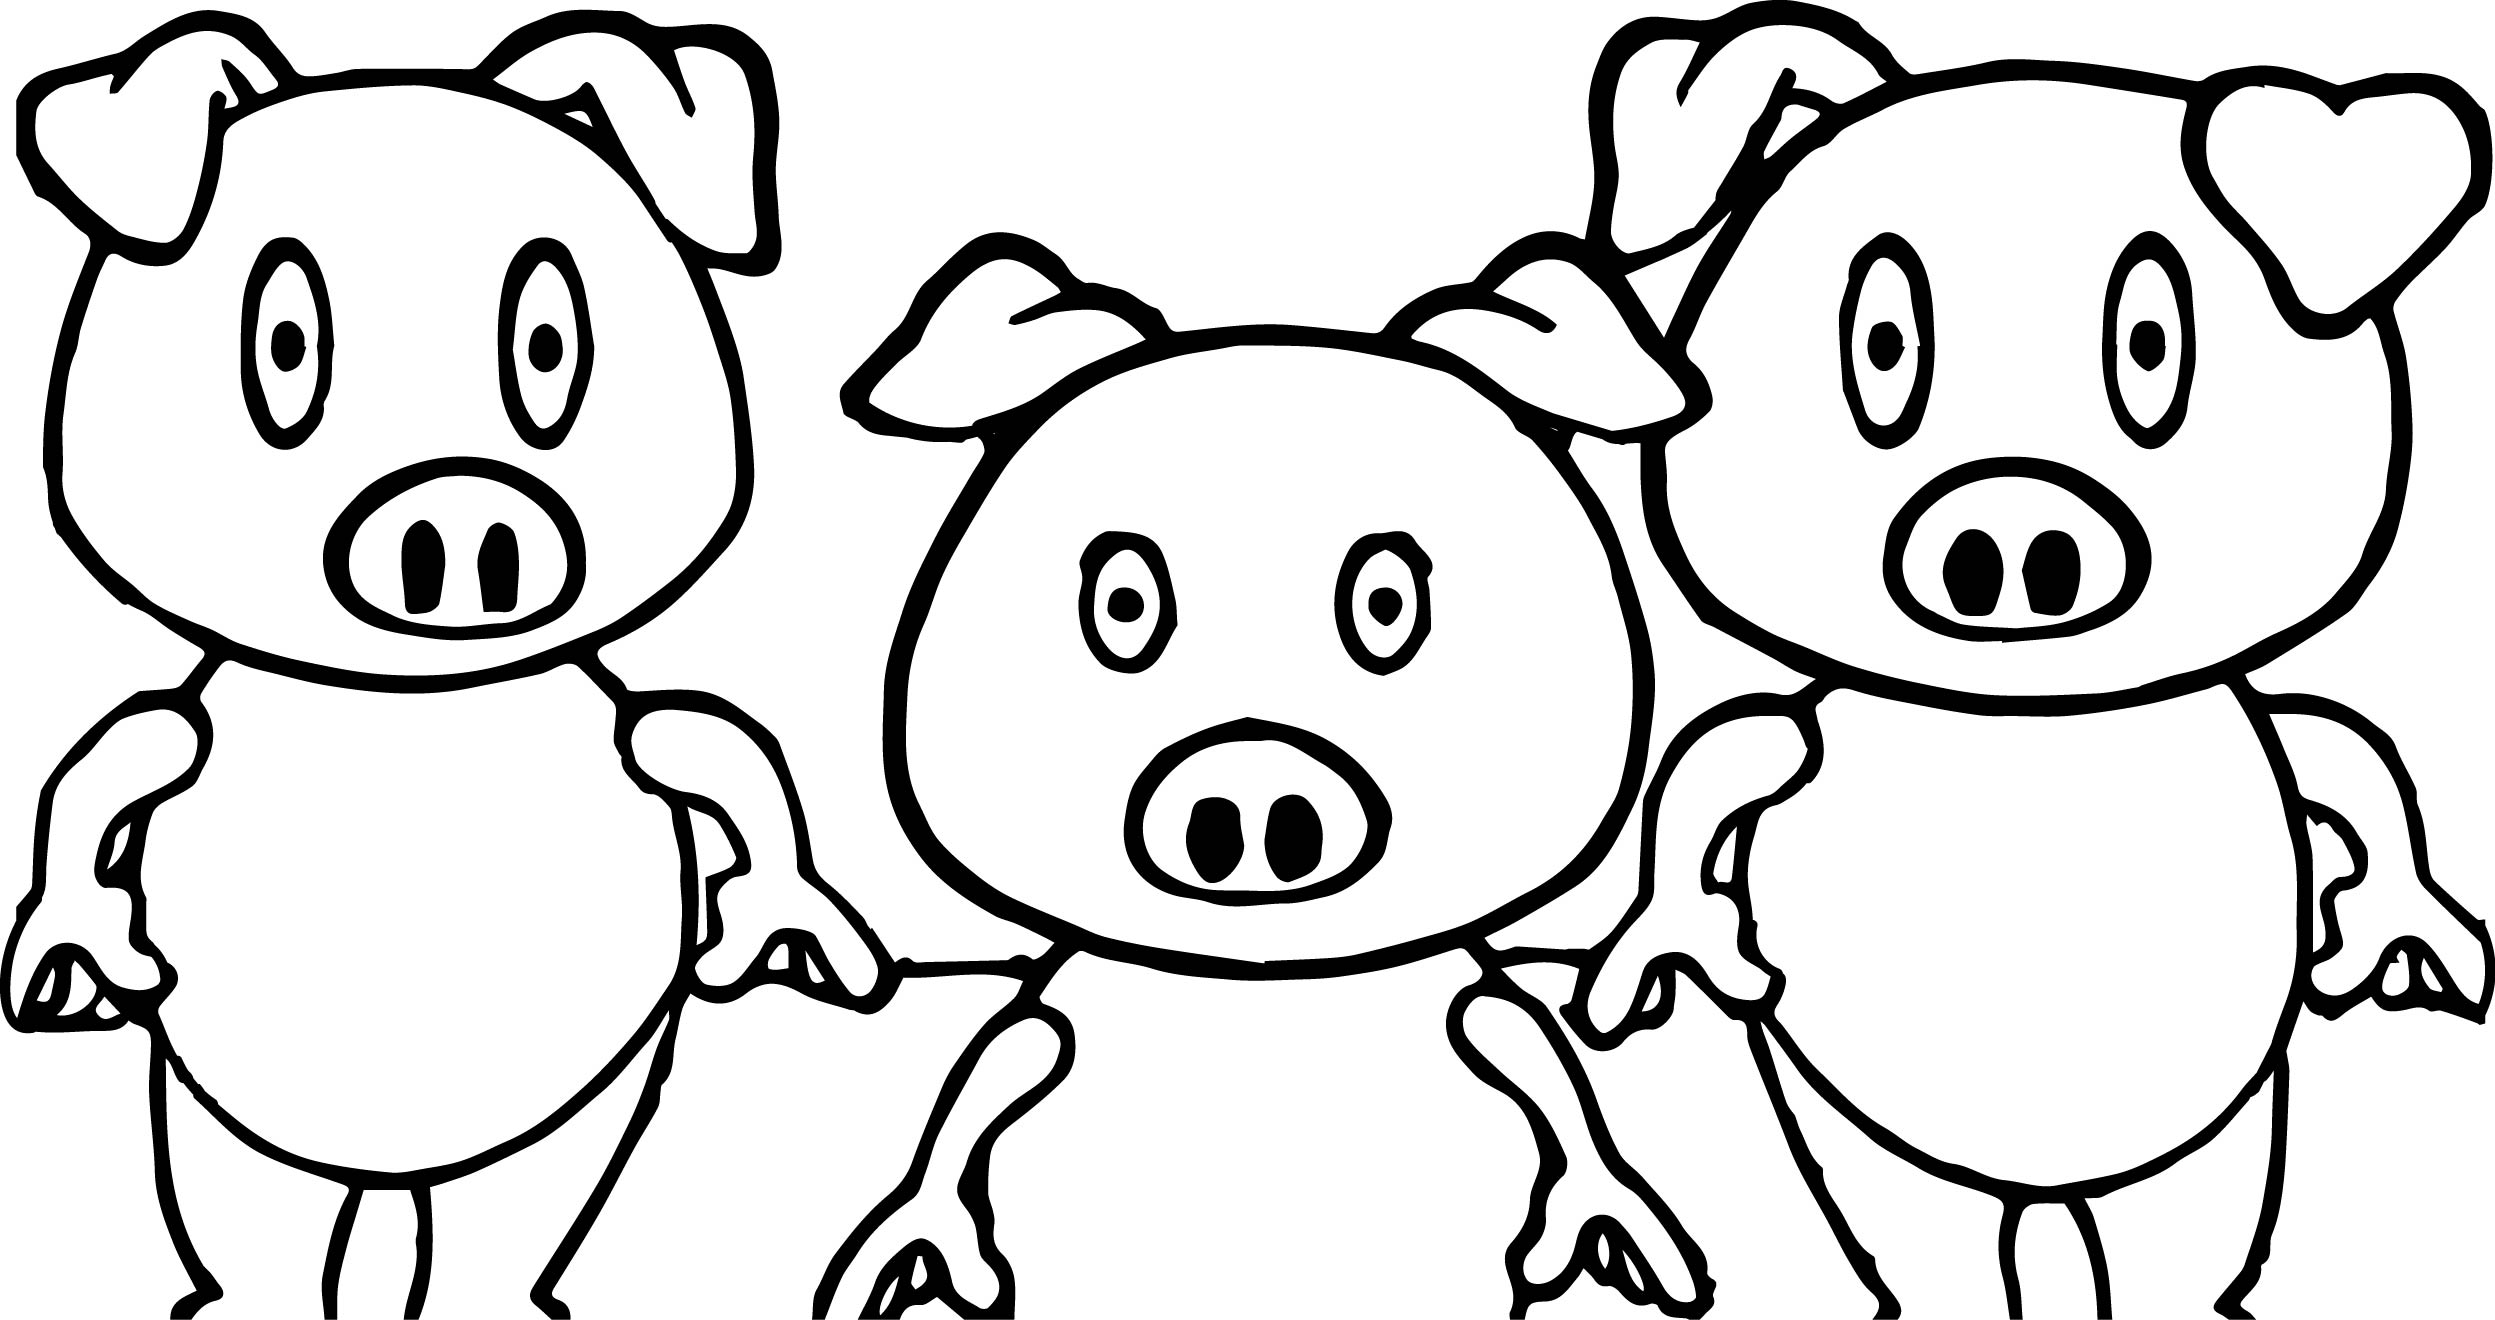 Simple Pig Drawing